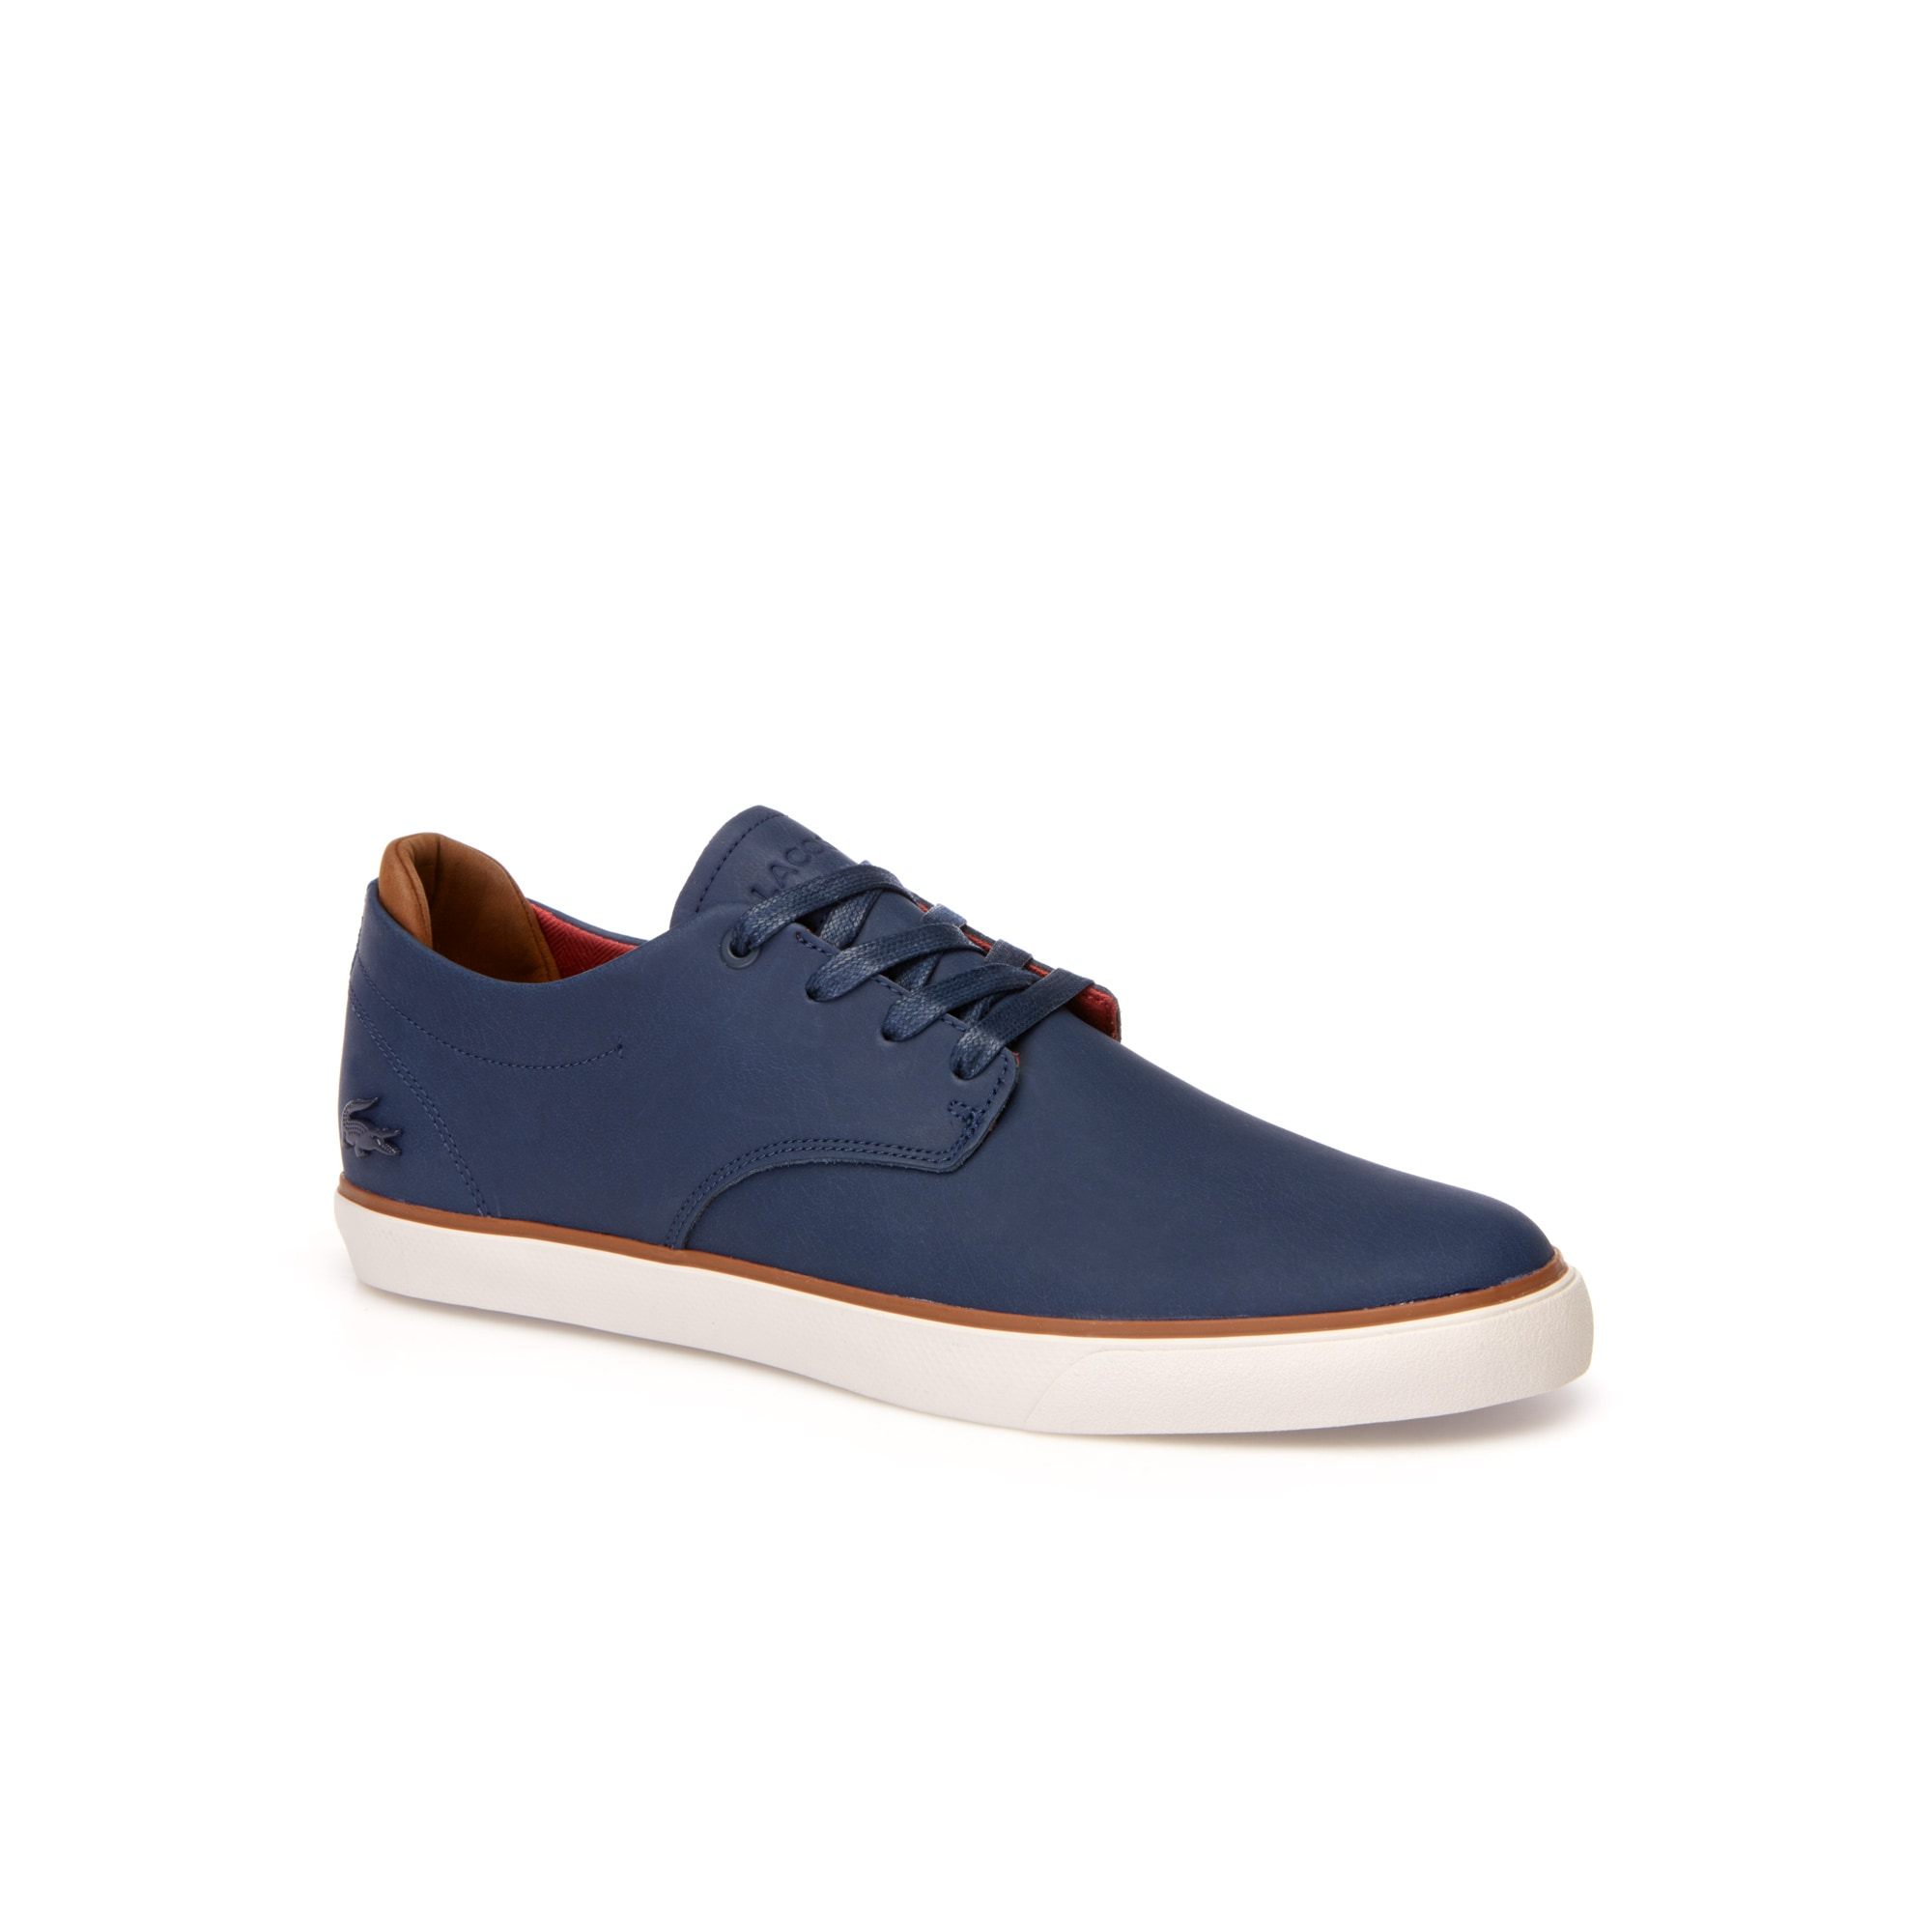 Men's Esparre Leather and Suede Trainers